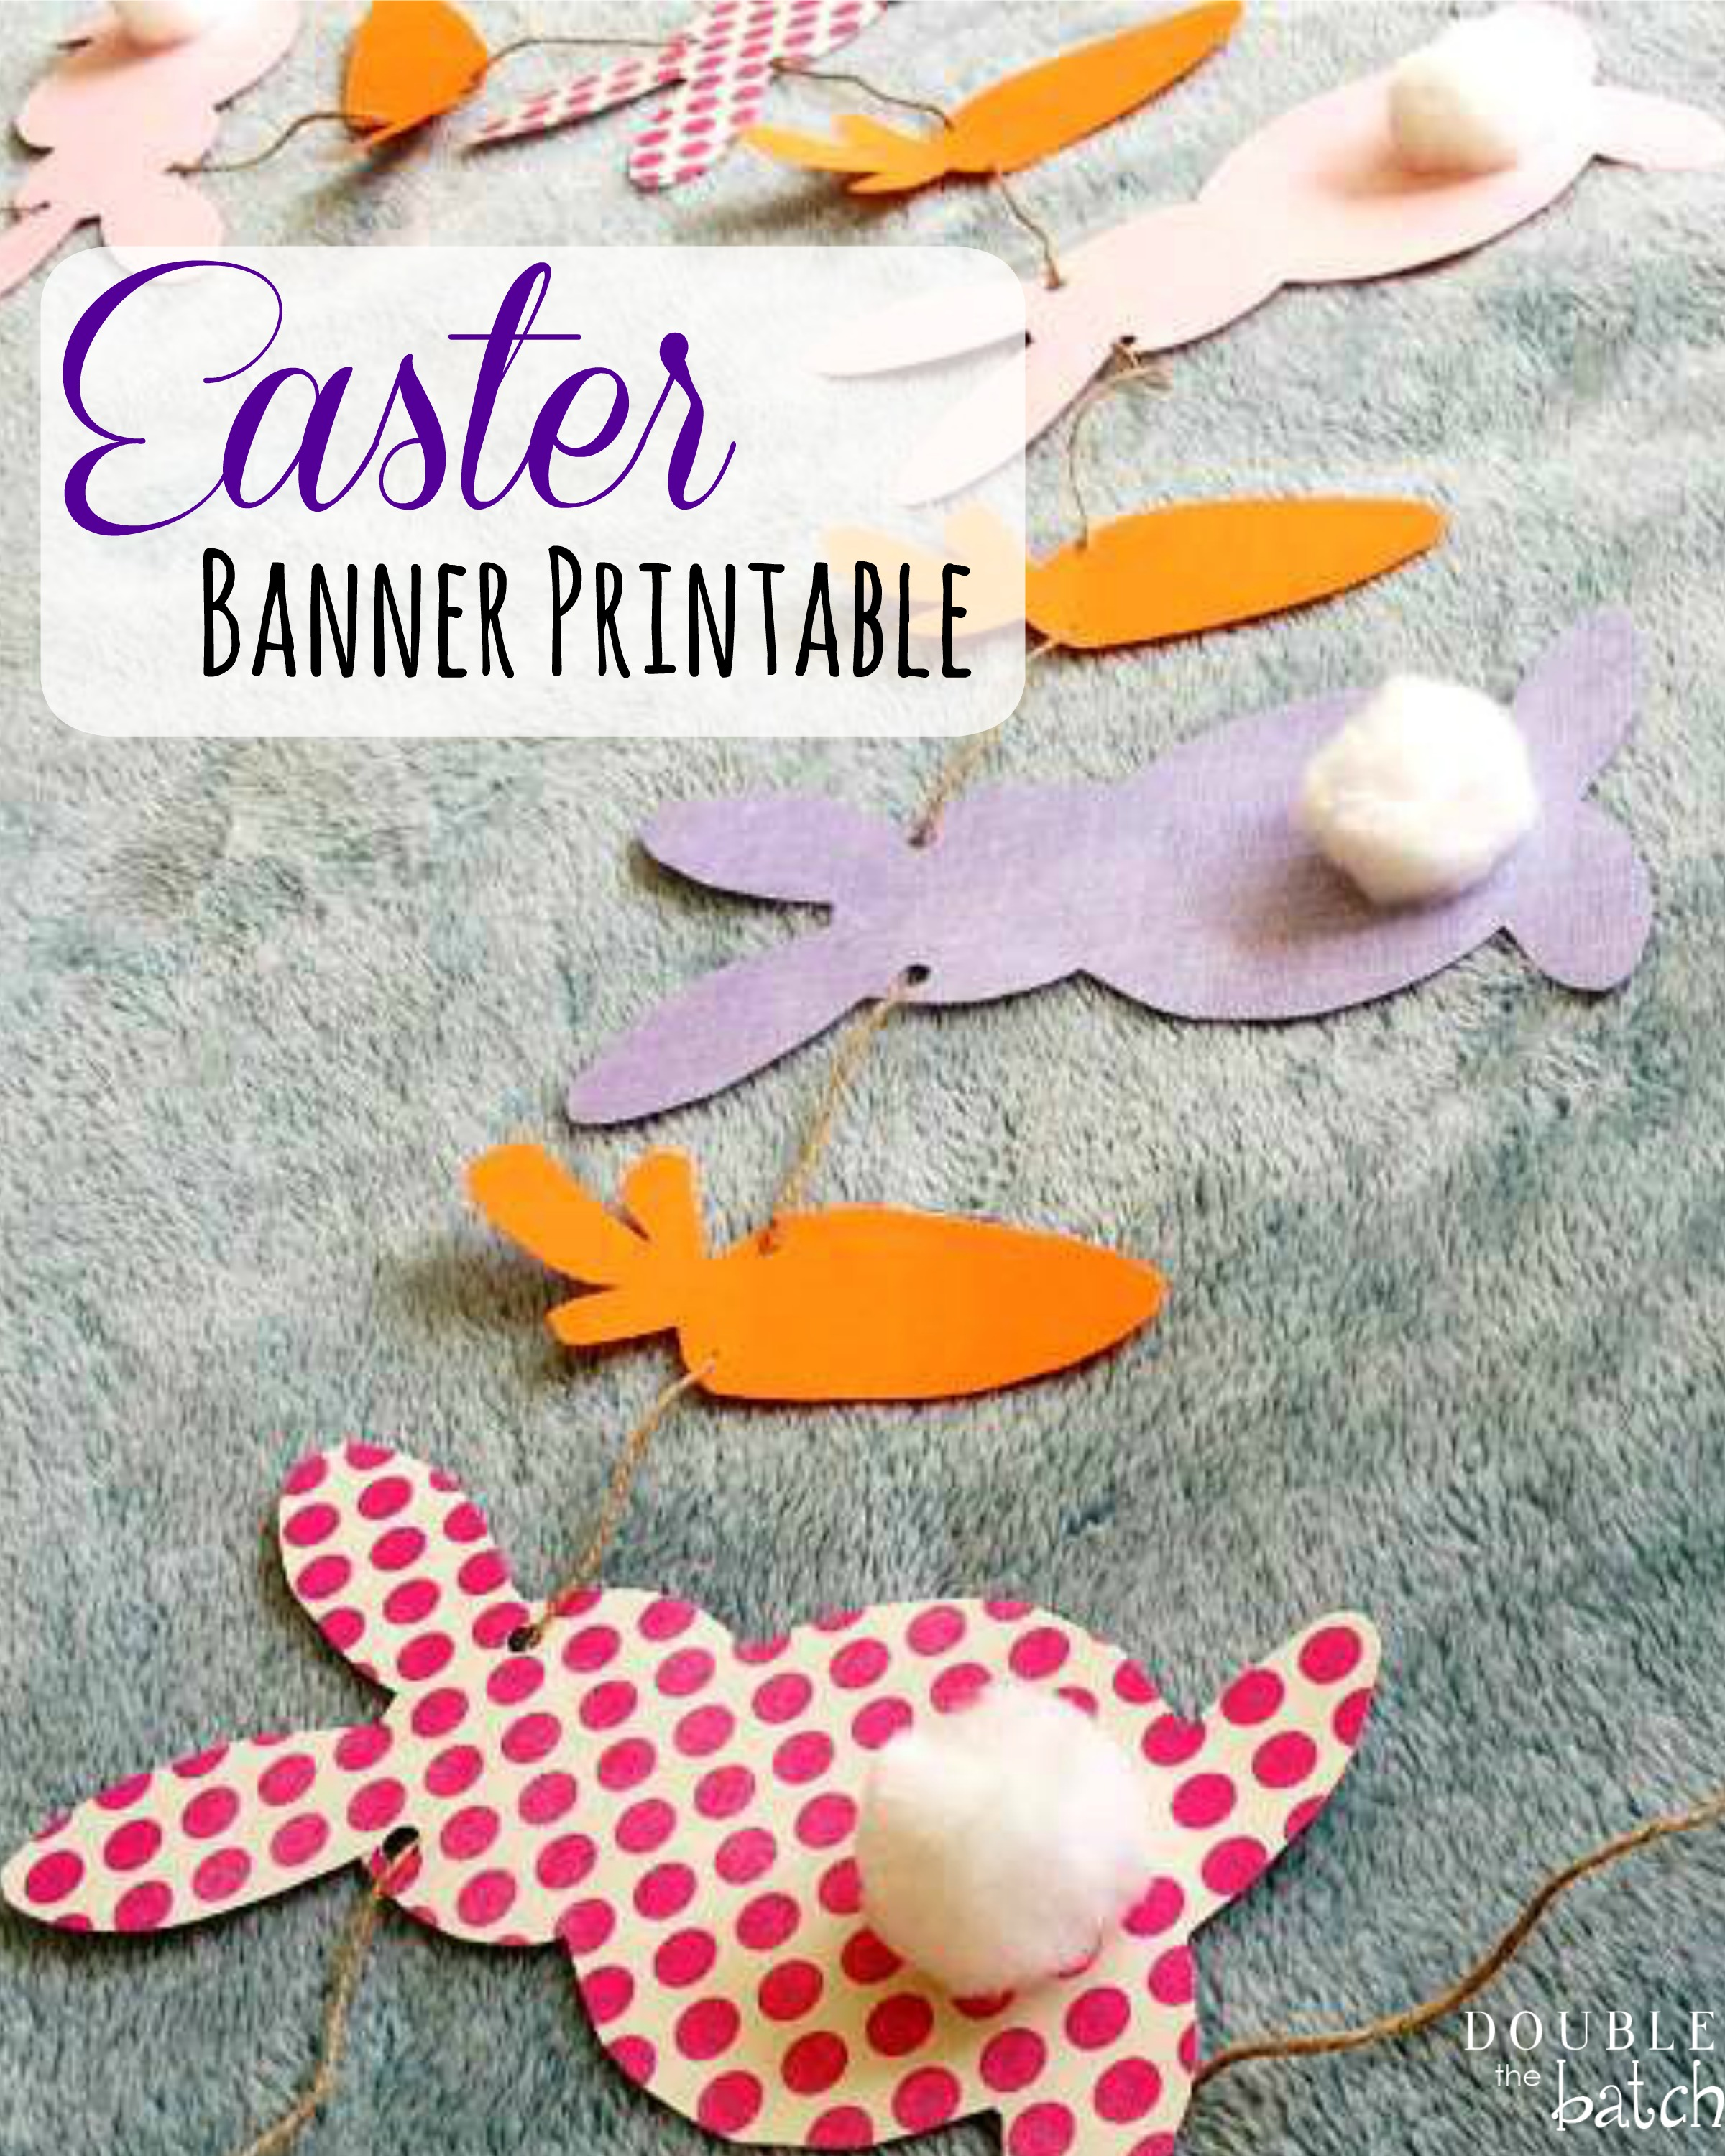 picture about Easter Banner Printable named Easter Banner Printable - Uplifting Mayhem